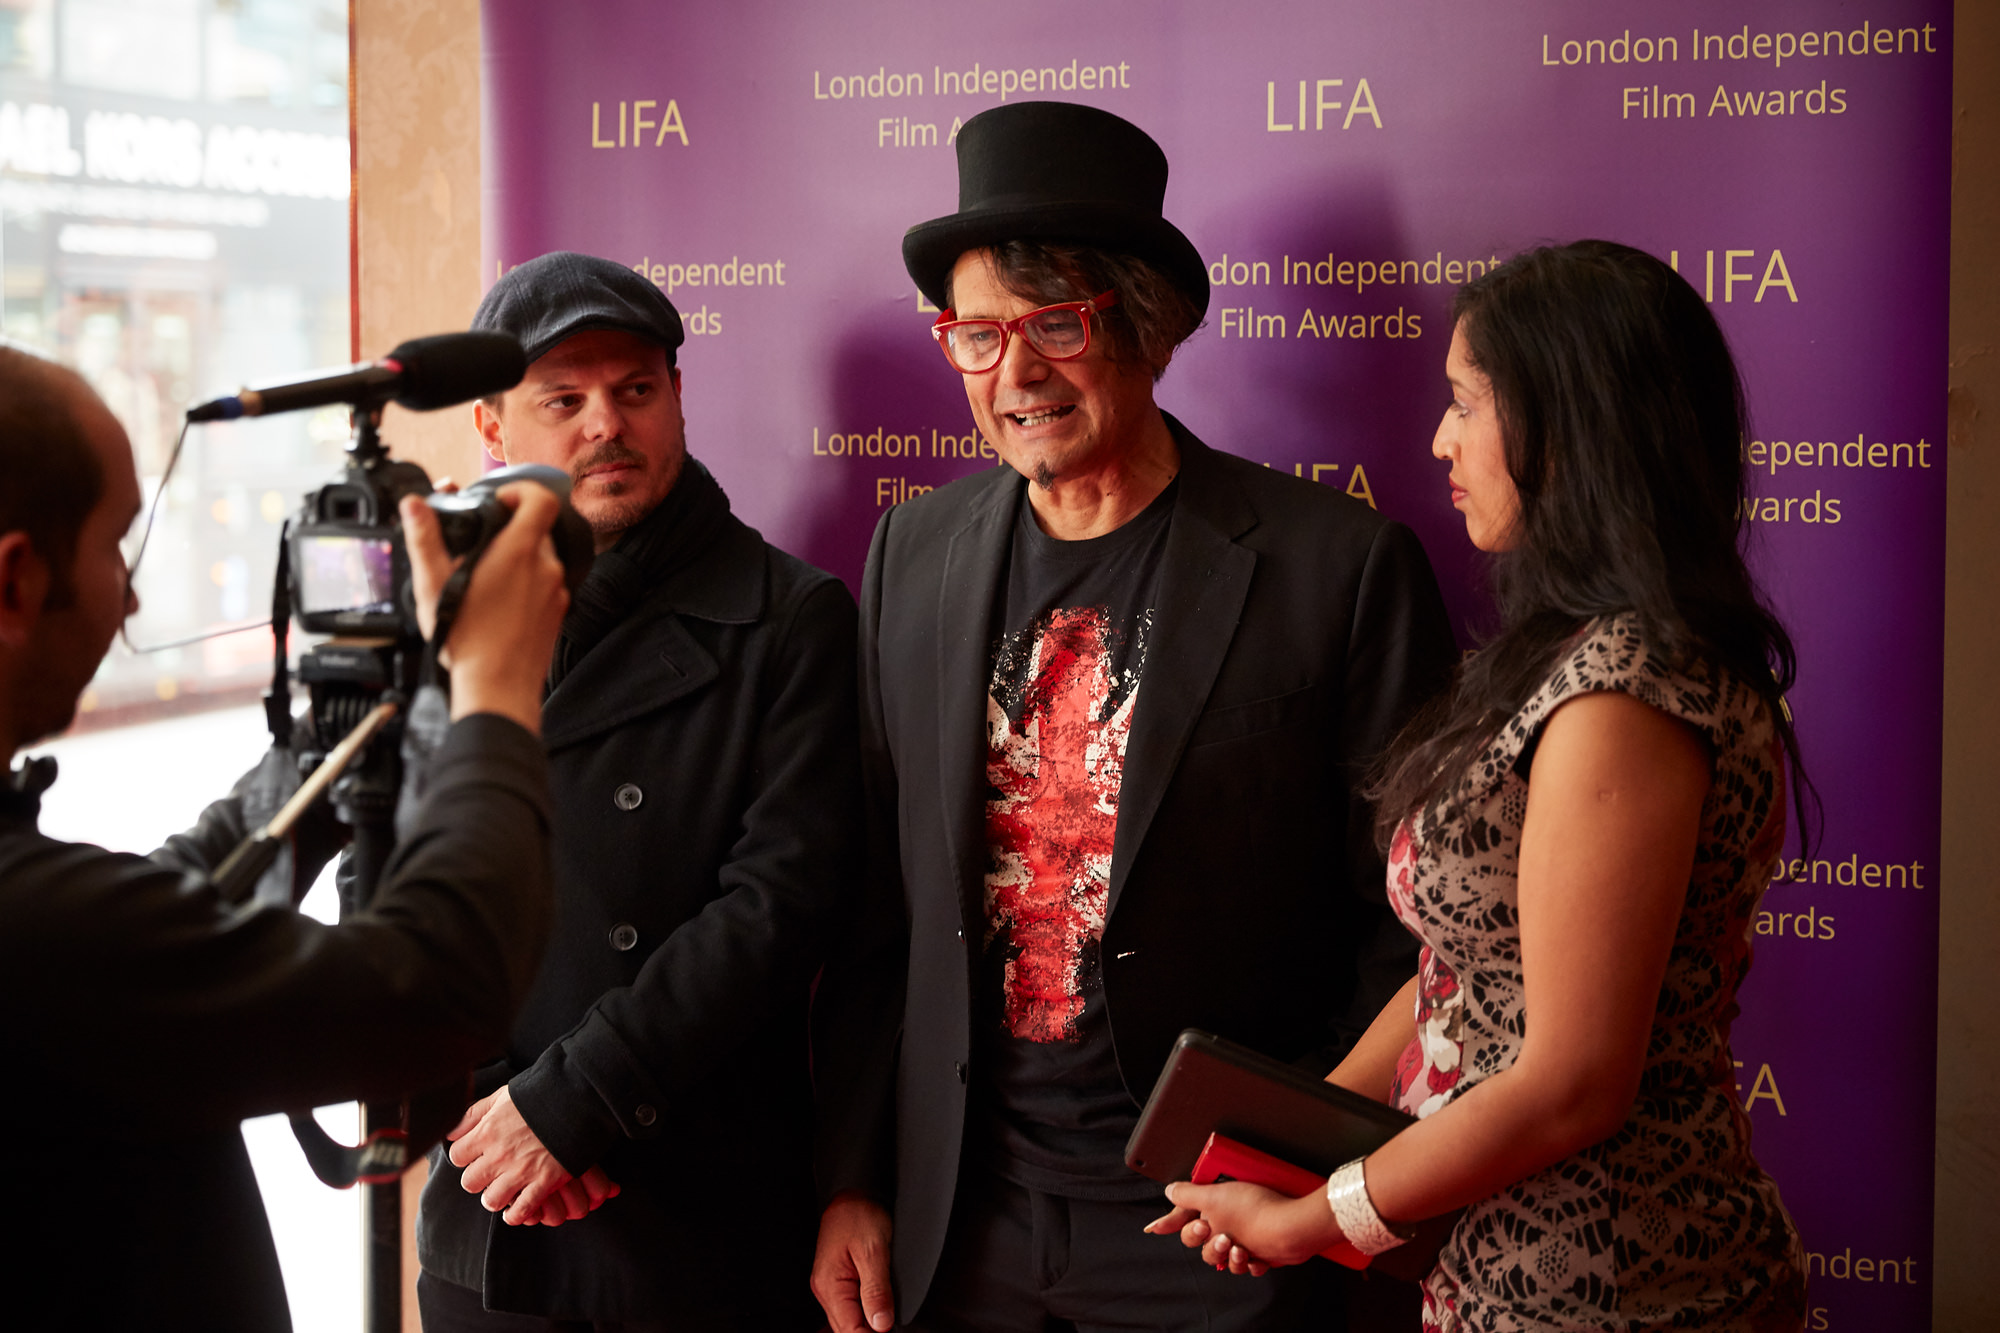 london independent film awards event photographer